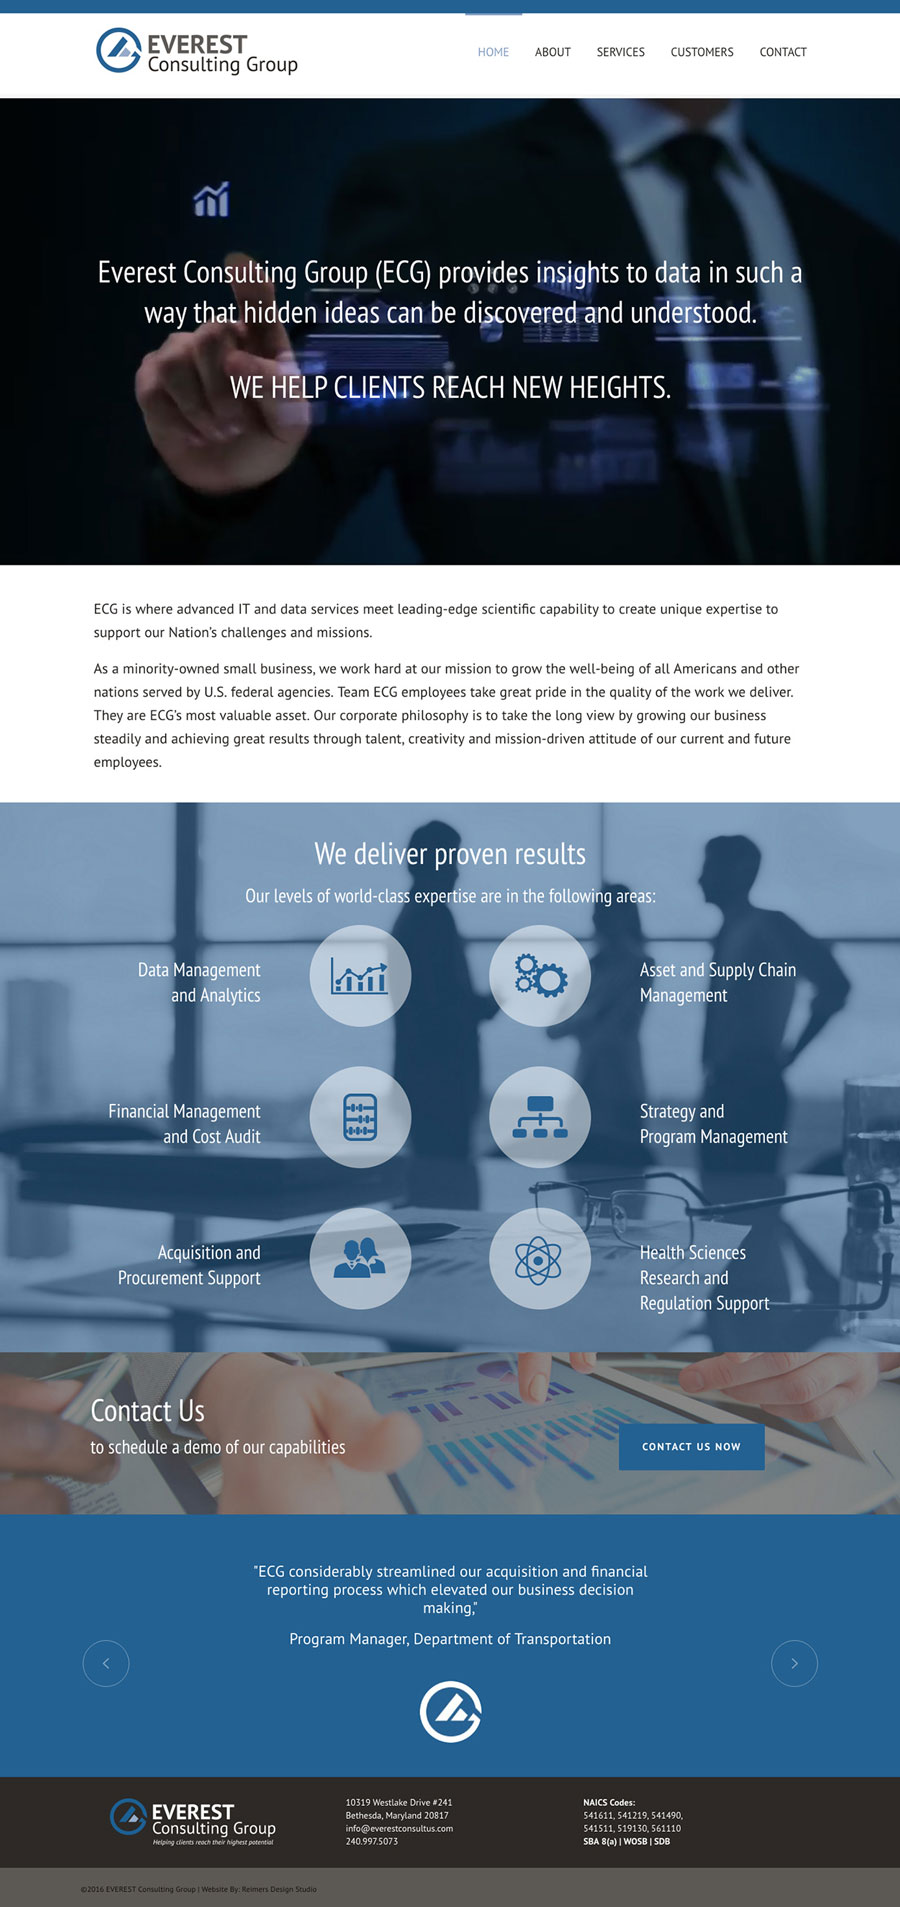 Everest Consulting Group Website Design